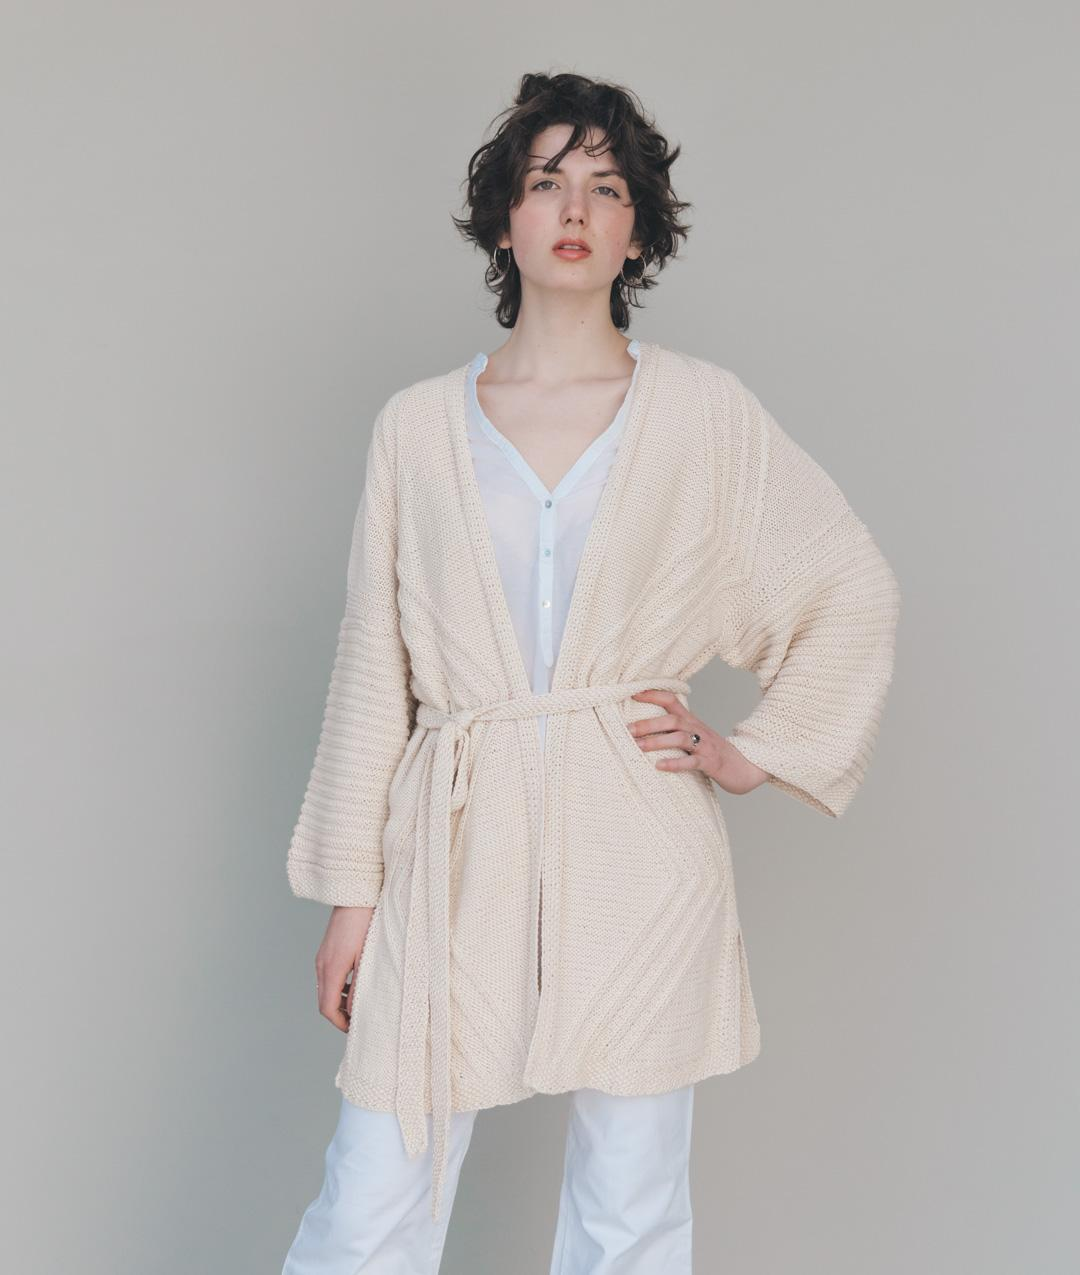 The Cardigans Collection - NEW IN - Ambrosia Cardi - 1